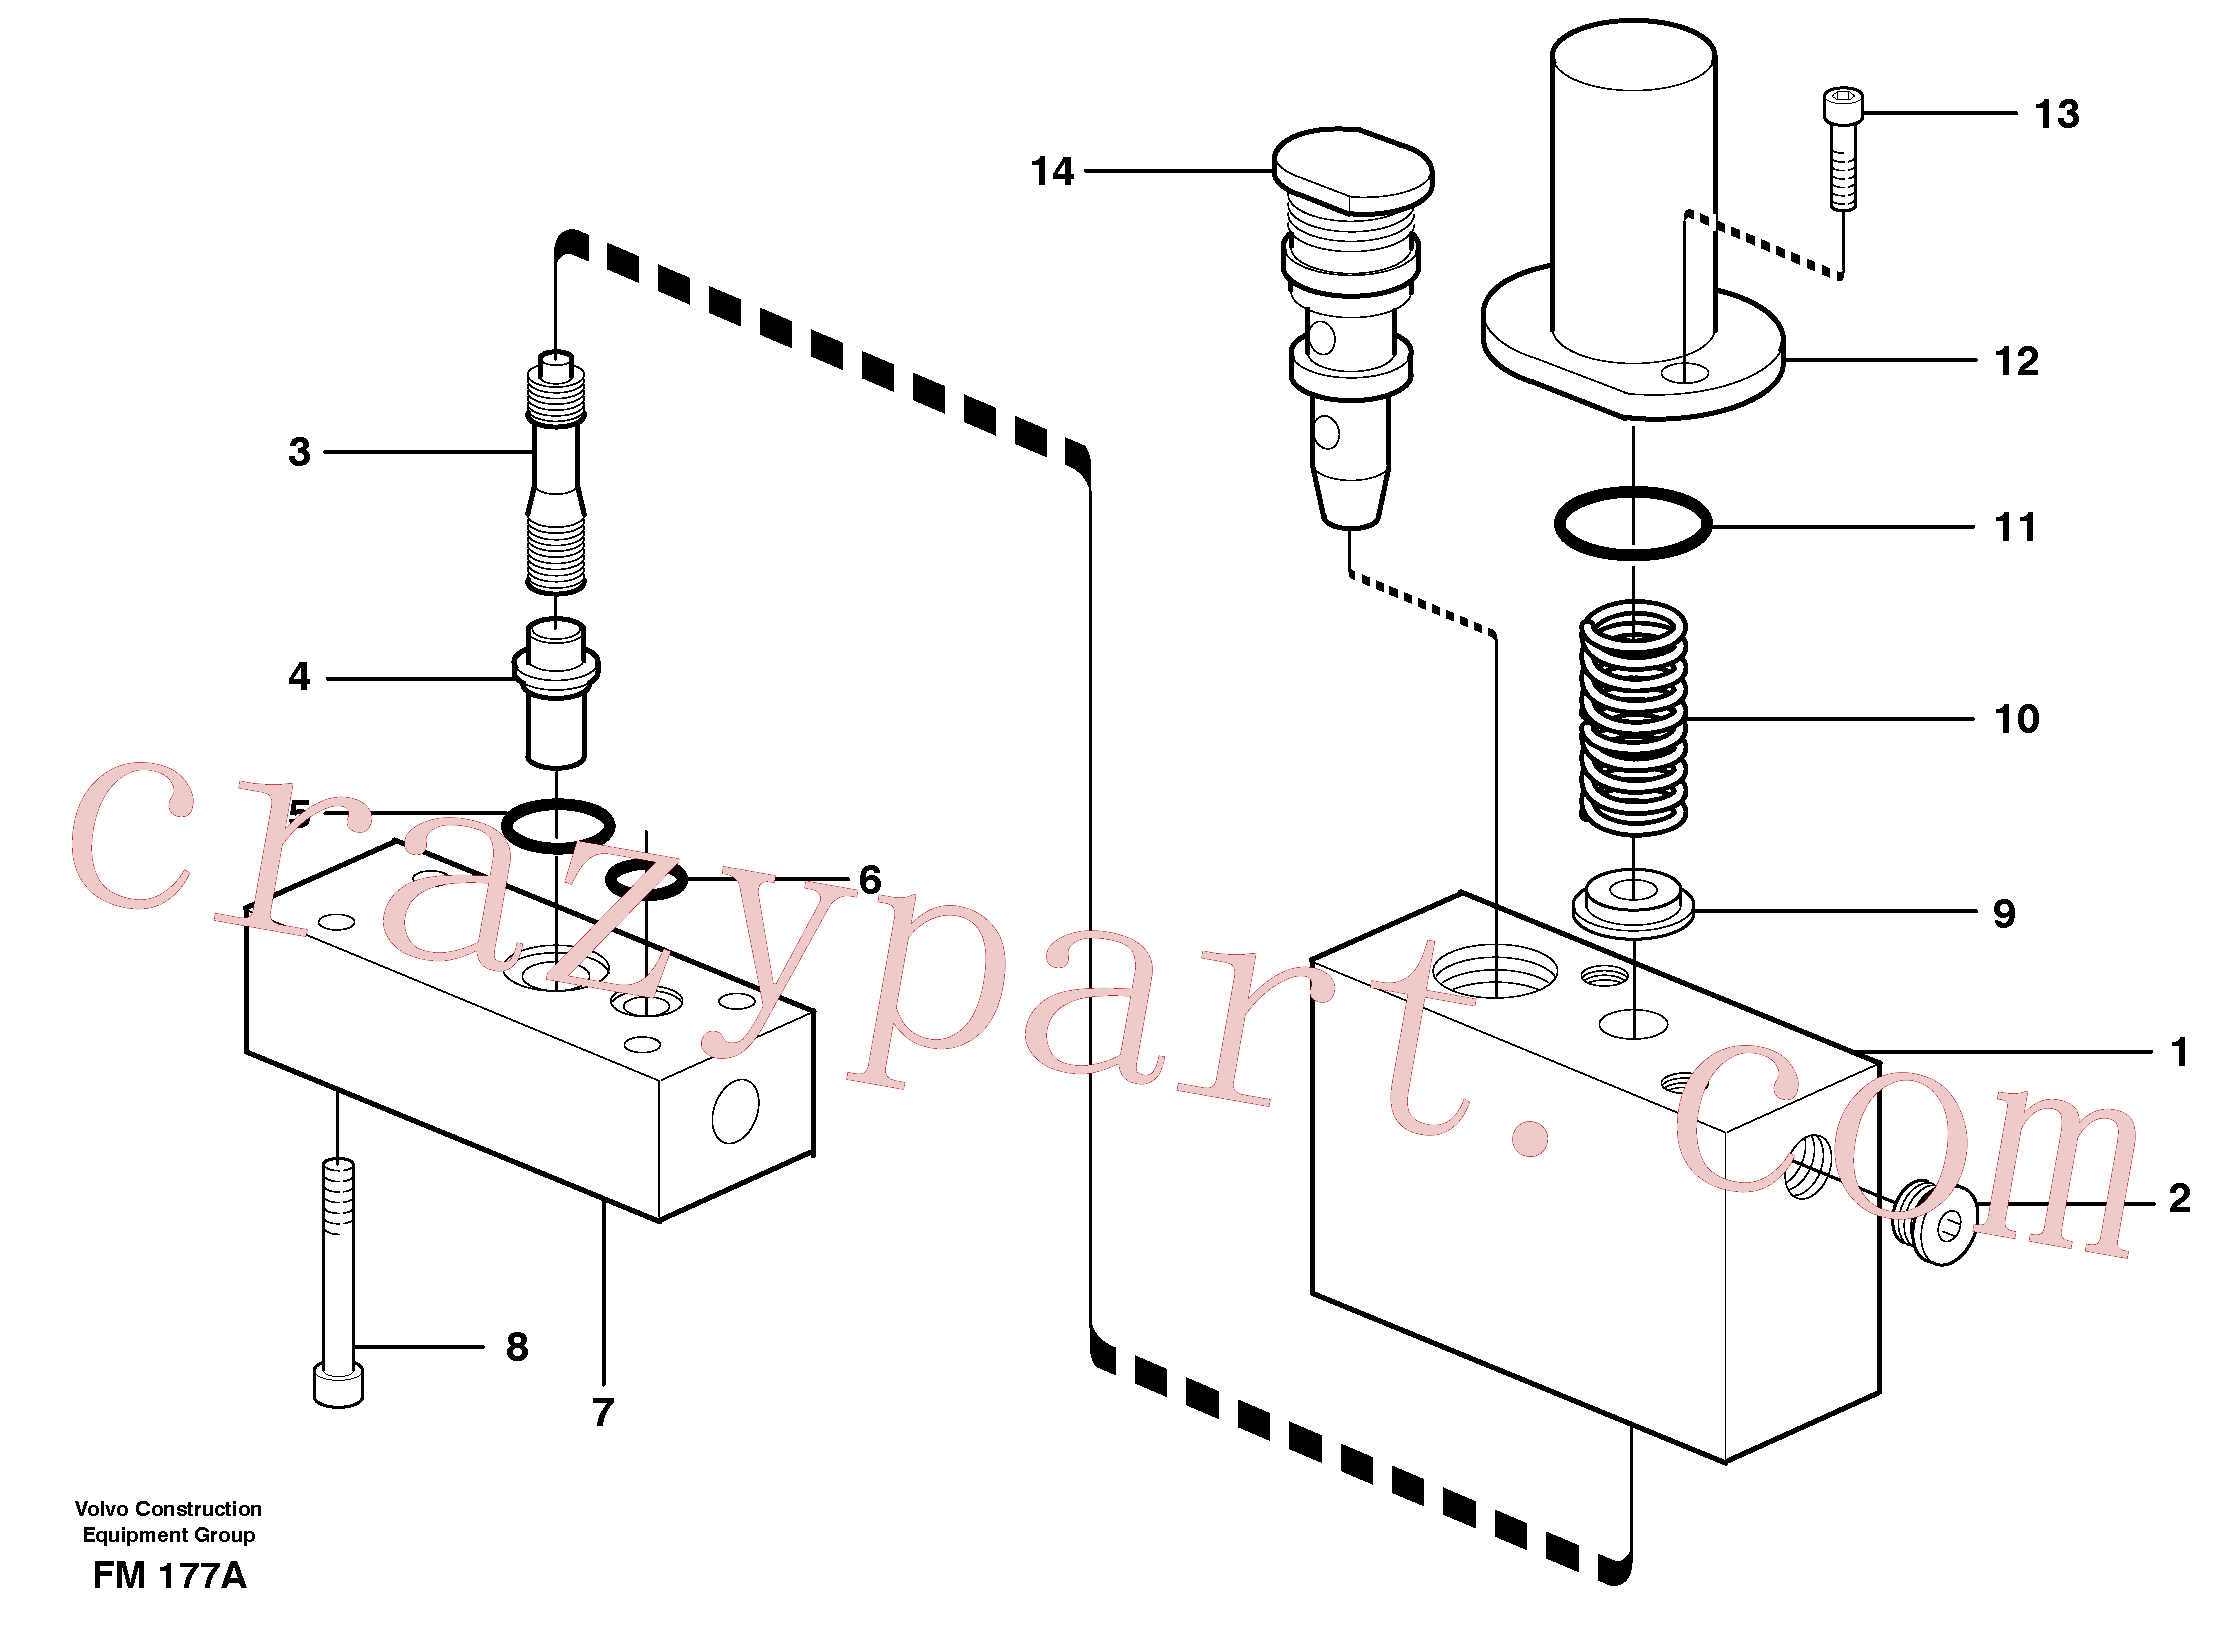 VOE14054983 for Volvo Thermostatic valve(FM177A assembly)